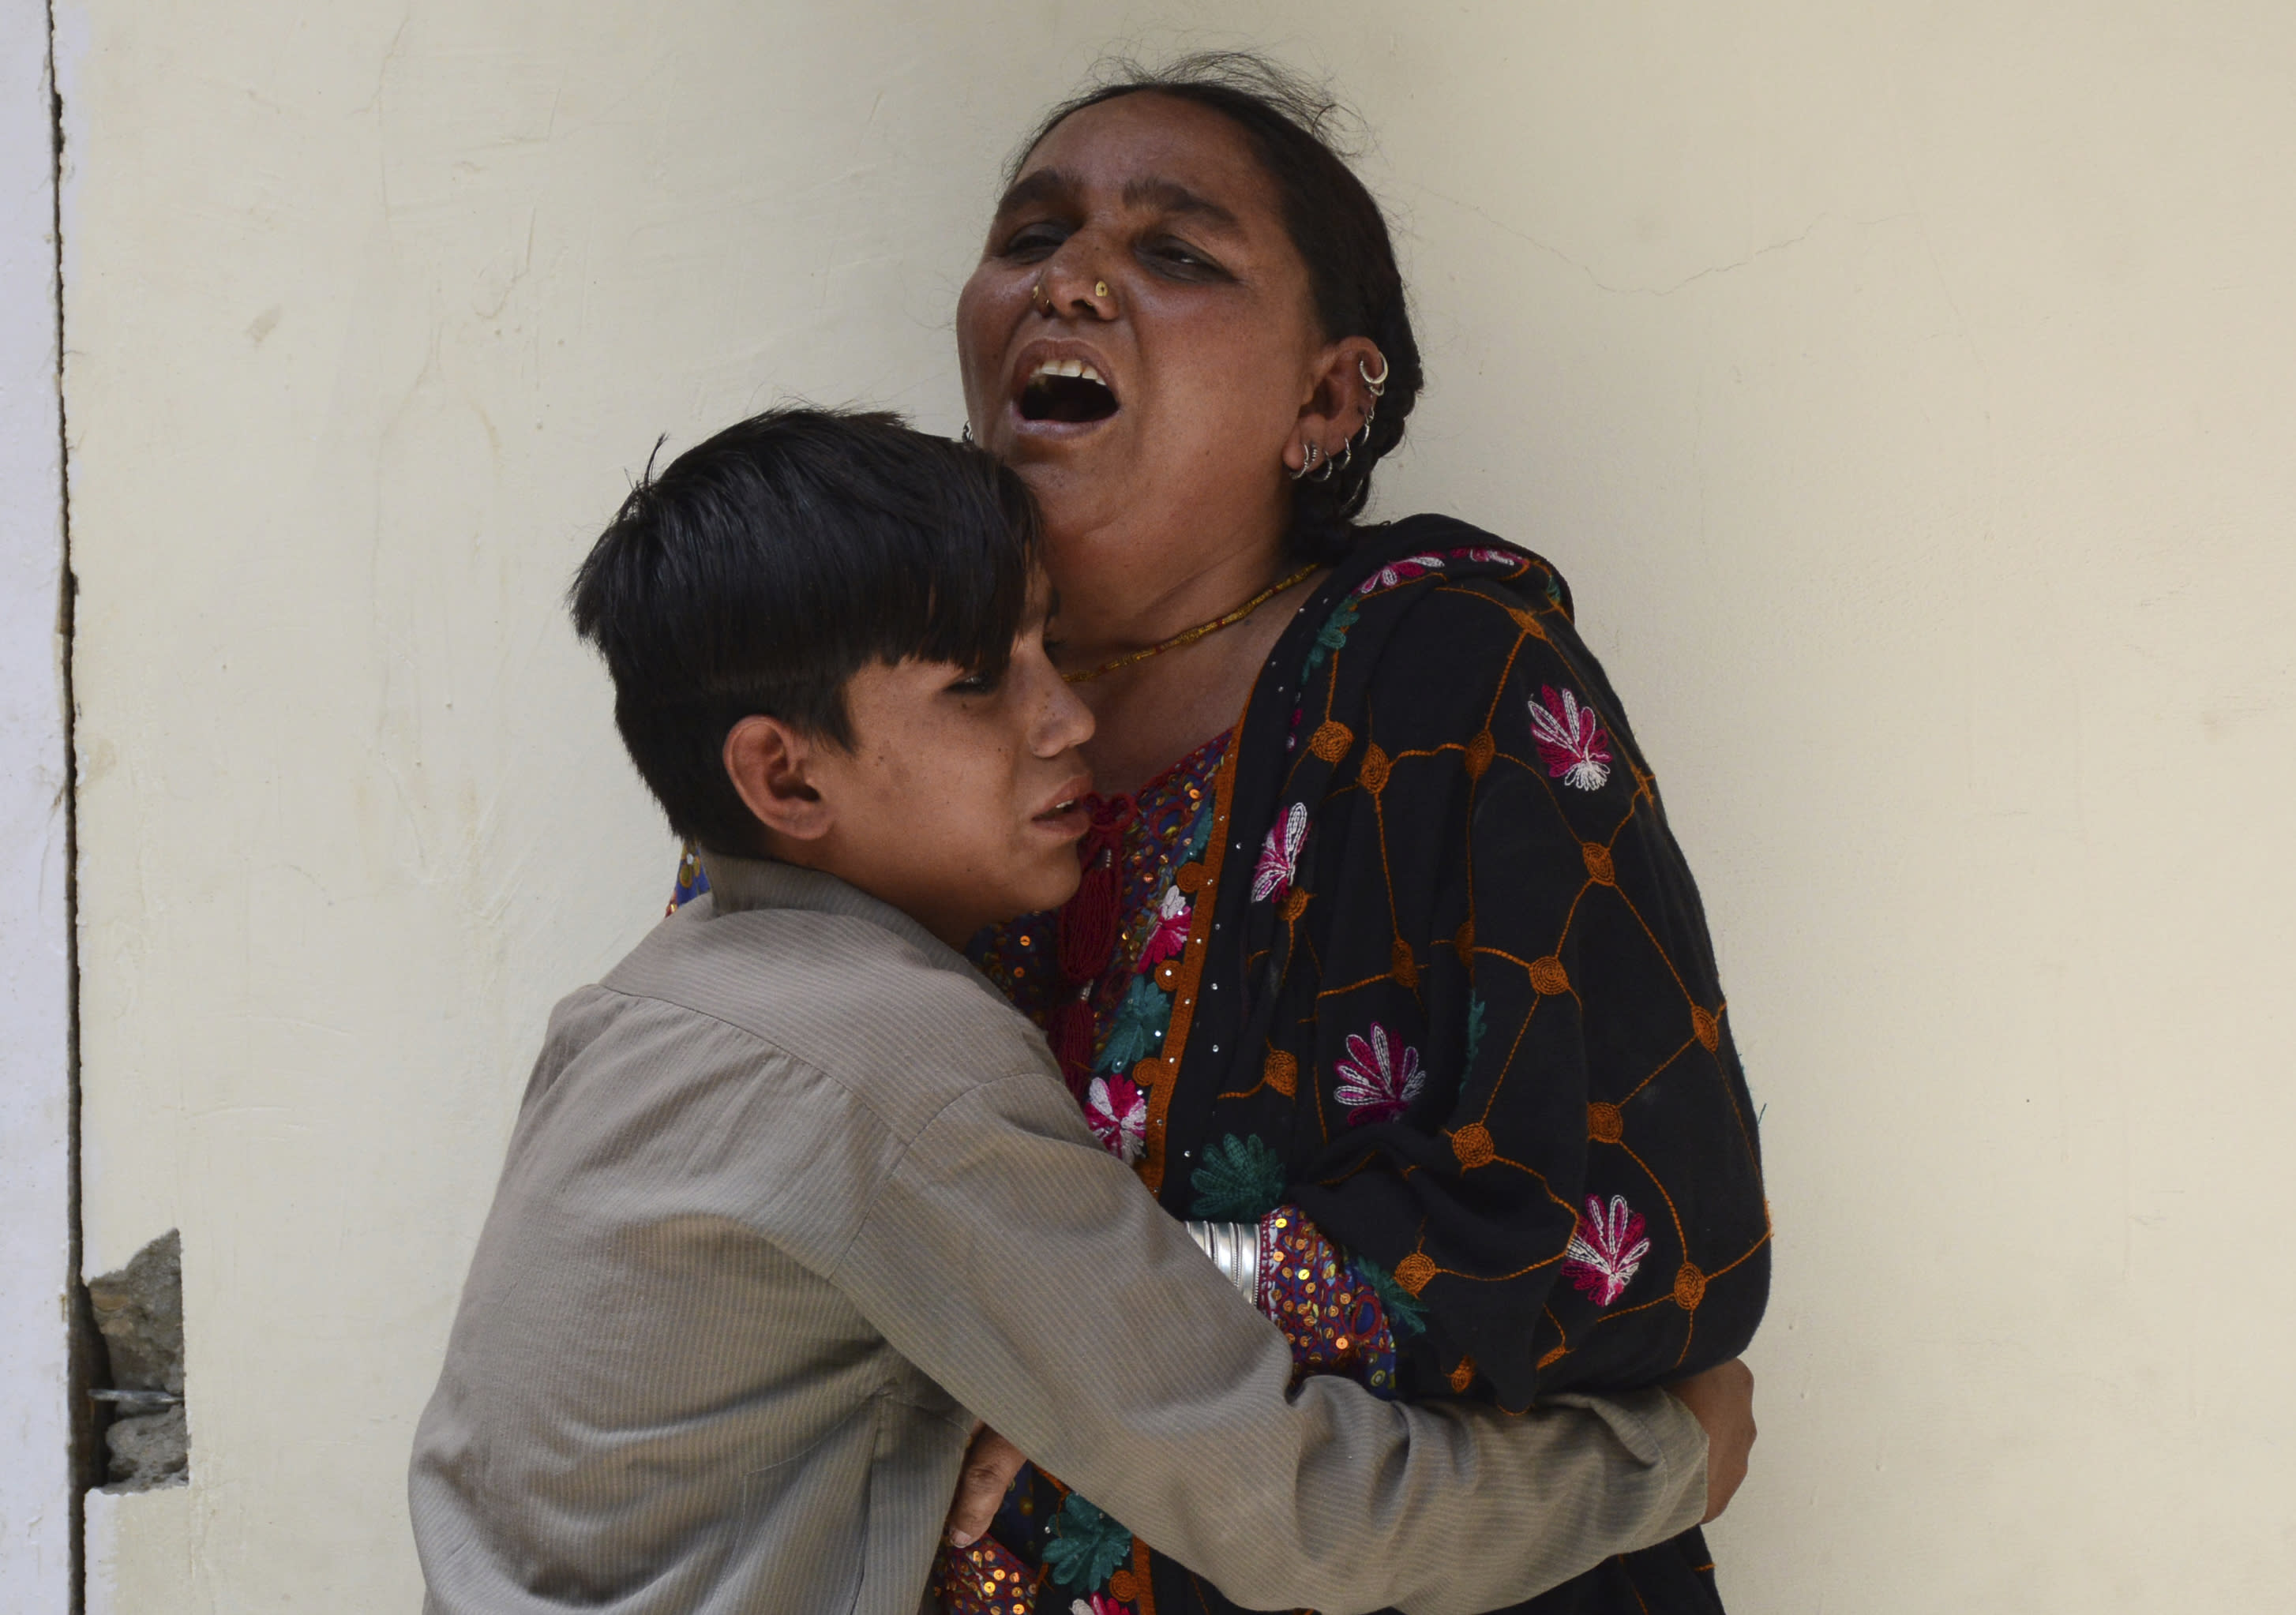 """FILE - In this July 25, 2018, file photo, a woman and her son mourn the death of their family member outside a hospital in Quetta, Pakistan were a suicide bomber struck outside a crowded polling station killing dozens of people as Pakistanis cast ballots. Counterterrorism department chief, Pervez Ahmed Chandio, said the Islamic State group is the newest and deadliest front in Pakistan's decades-old war on terror. """"It is one of the most dangerous threats facing Pakistan and we are ready to fight this war,"""" he said. (AP Photo/Arshad Butt, File)"""